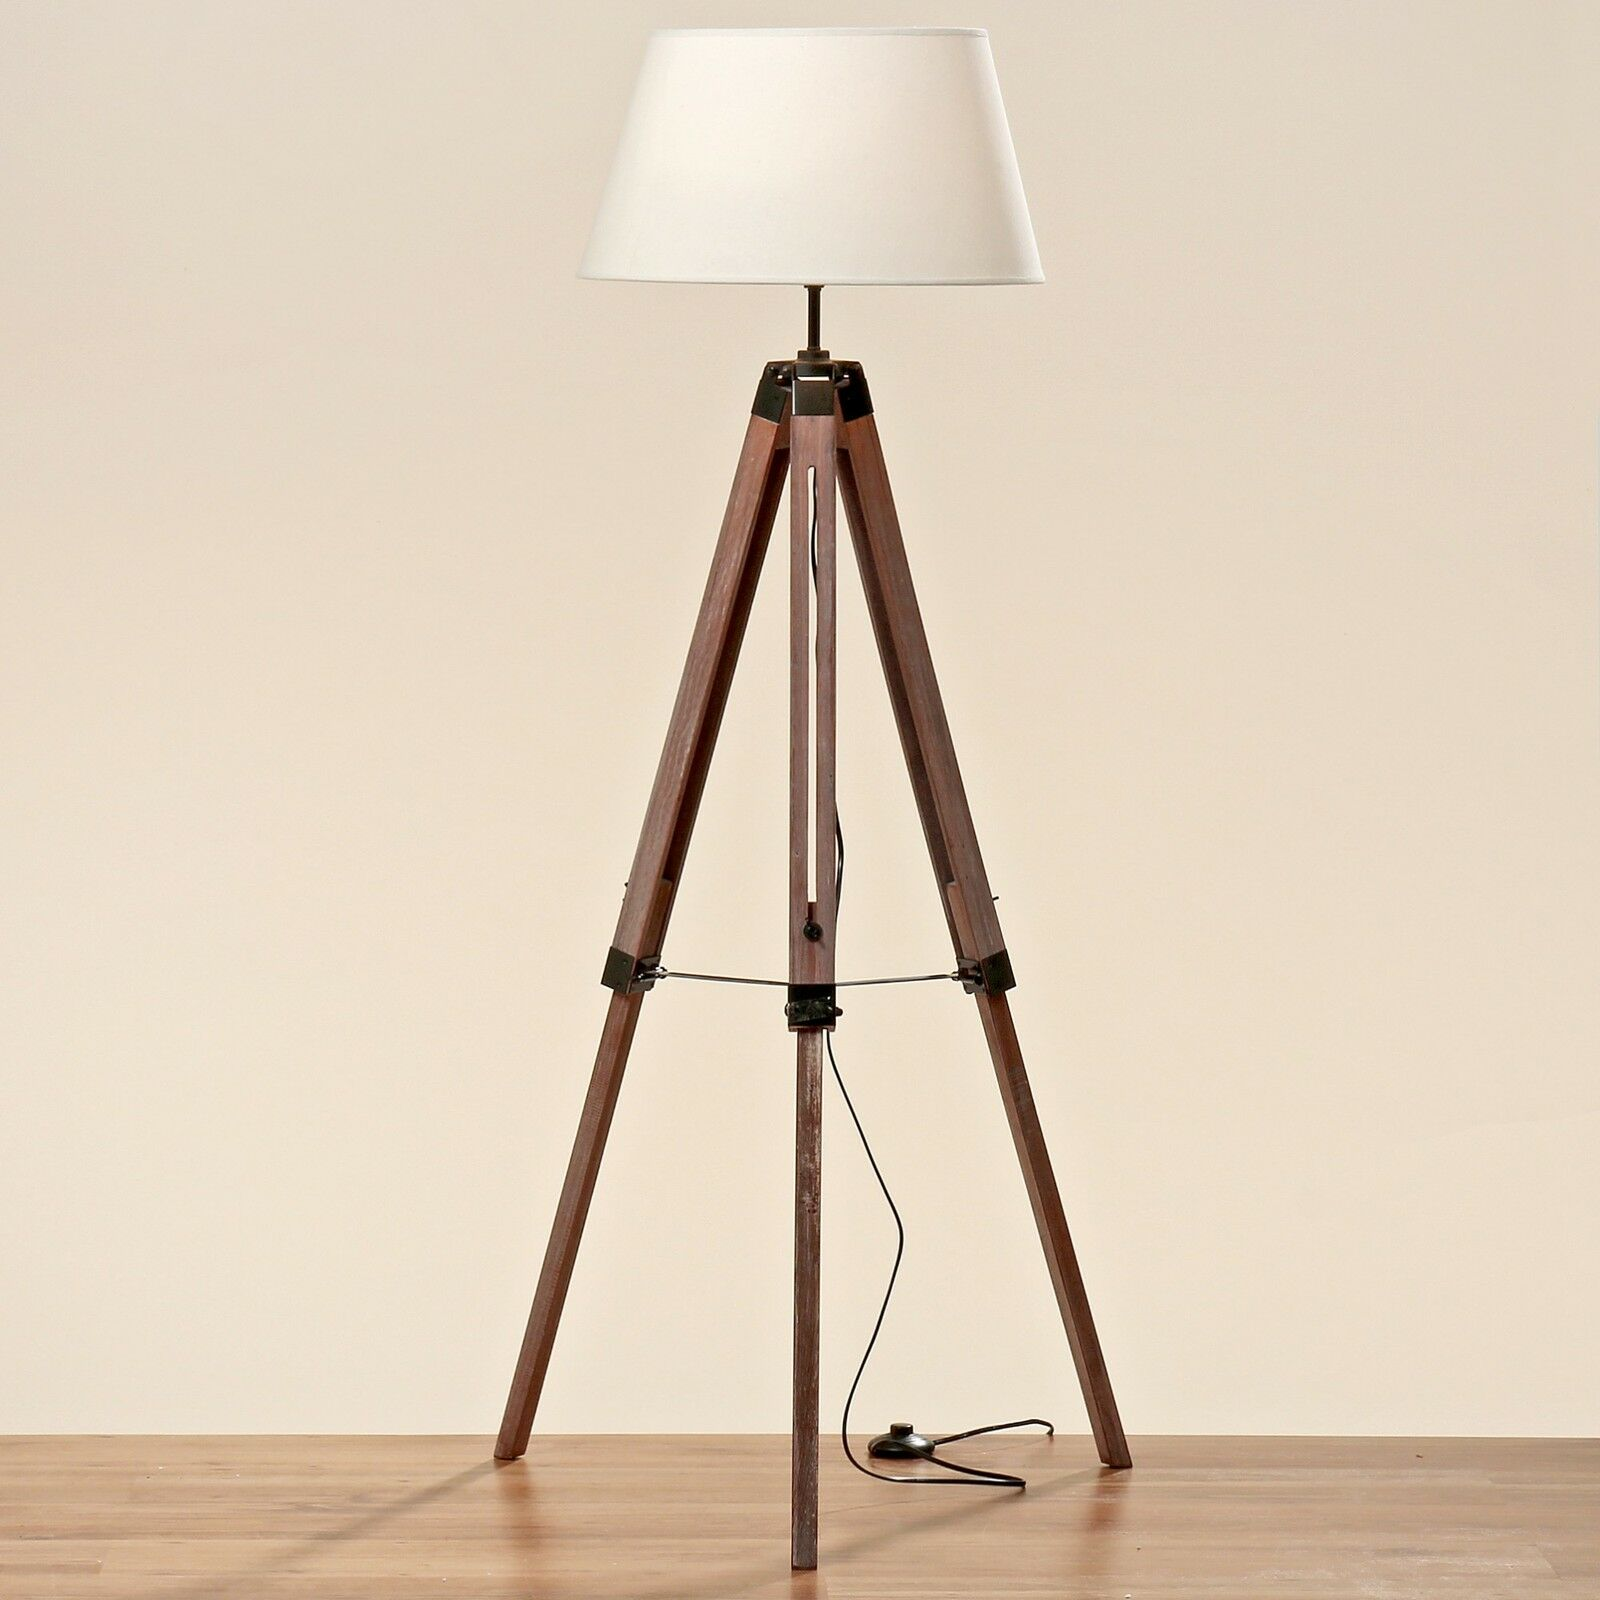 teleskoplampe tripod holz schirm stativ stehlampe lampe teleskop stativlampe eur 95 90. Black Bedroom Furniture Sets. Home Design Ideas